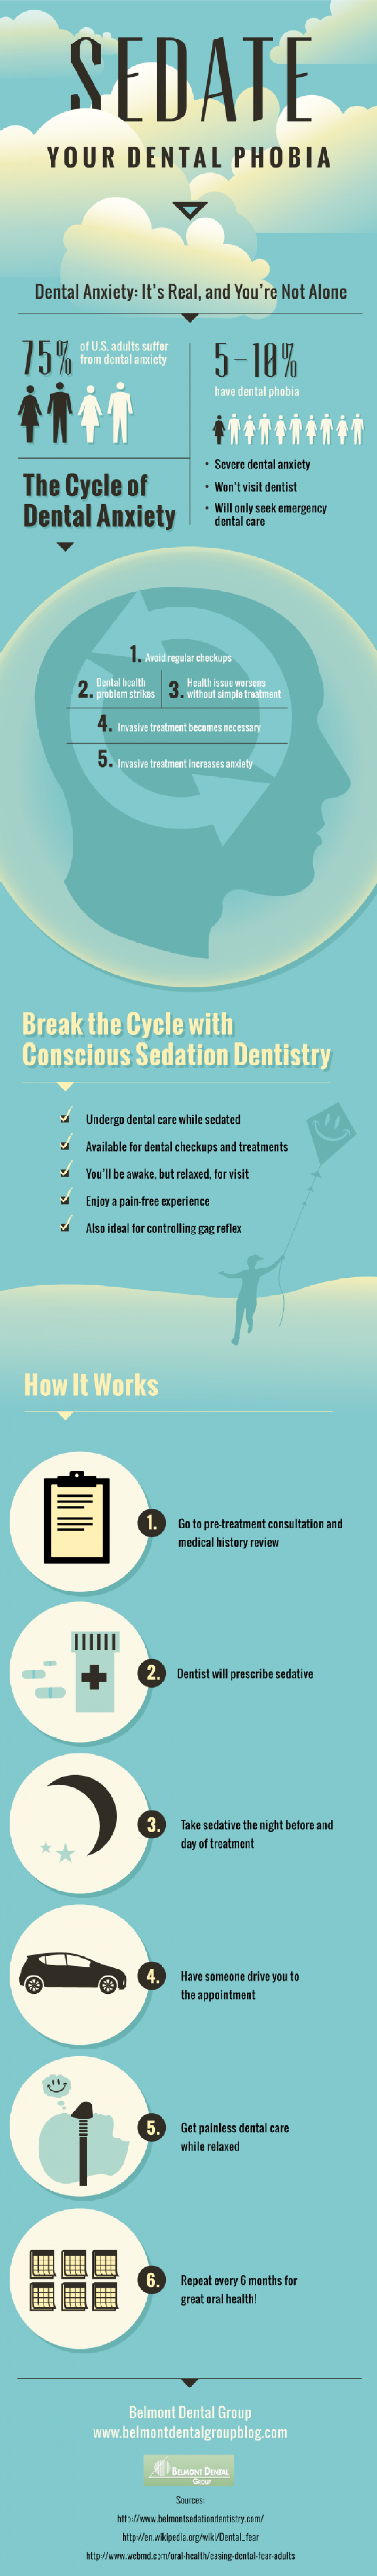 Sedate Your Dental Phobia Infographic